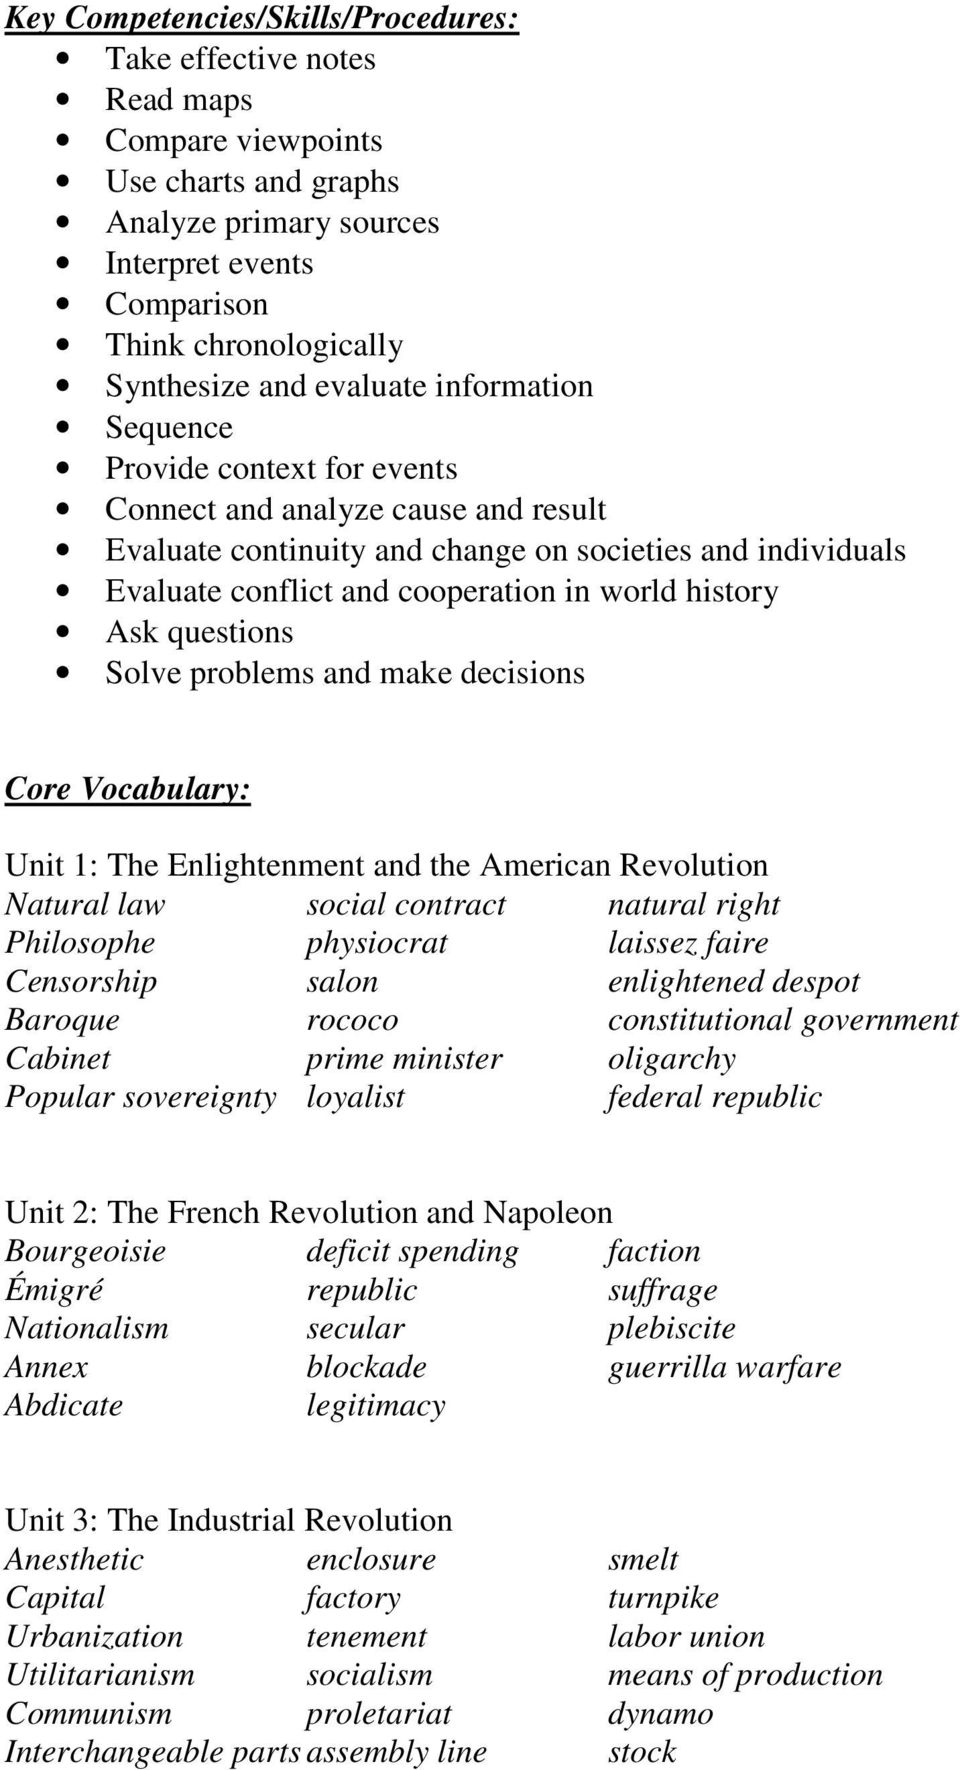 american and french revolution comparison chart